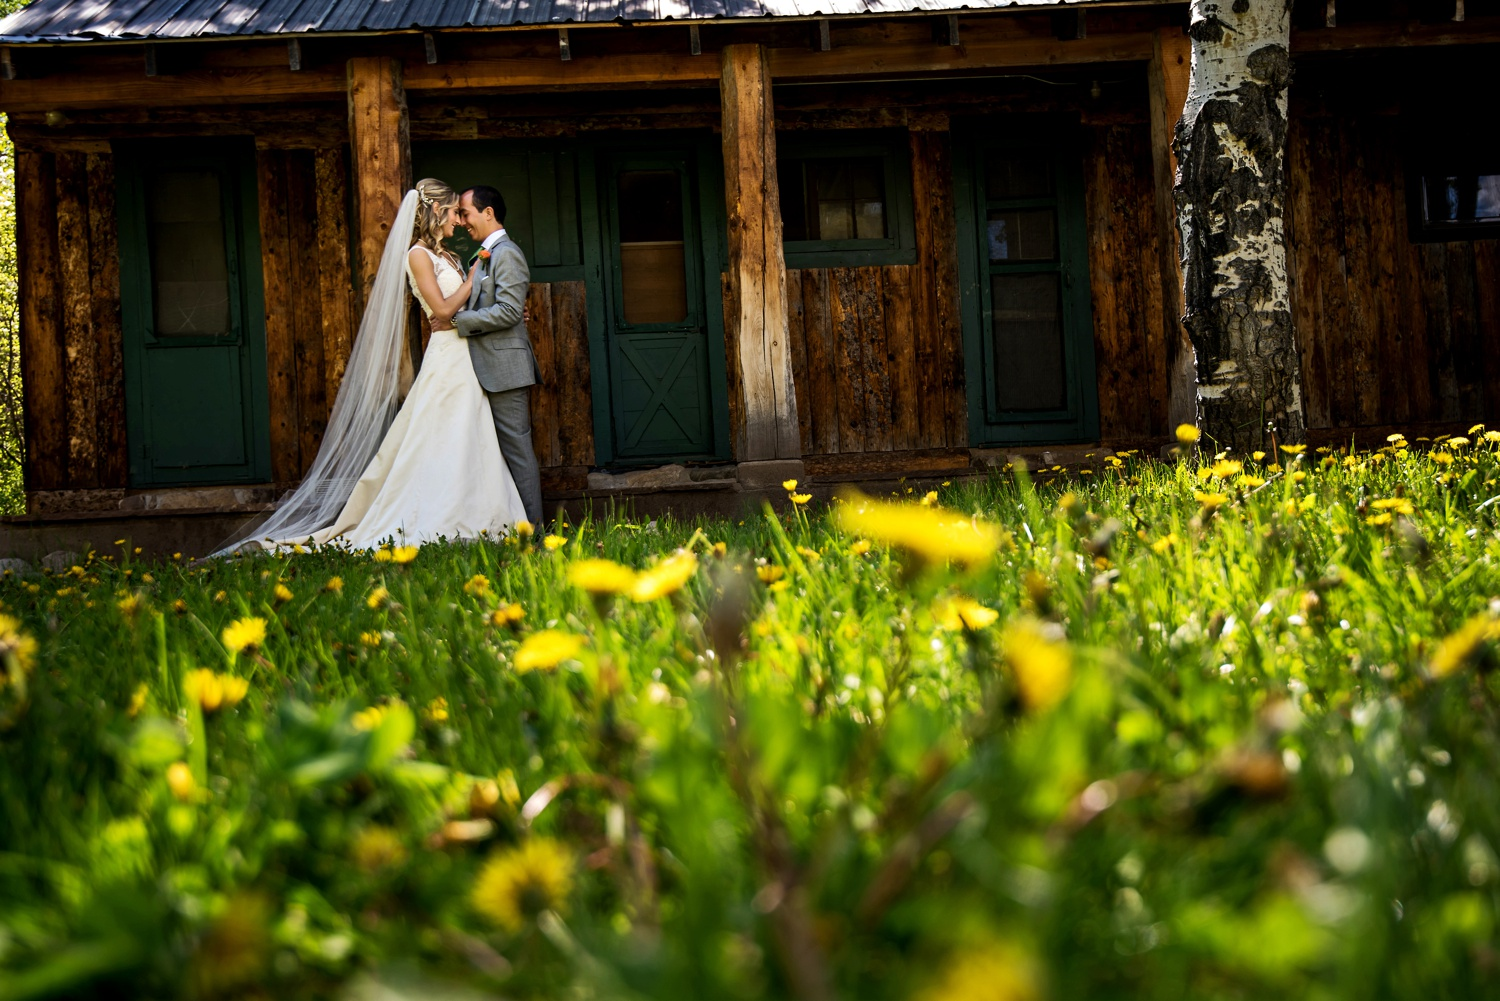 Ranch wedding at Perry-Mansfield in Steamboat Springs, Colorado.